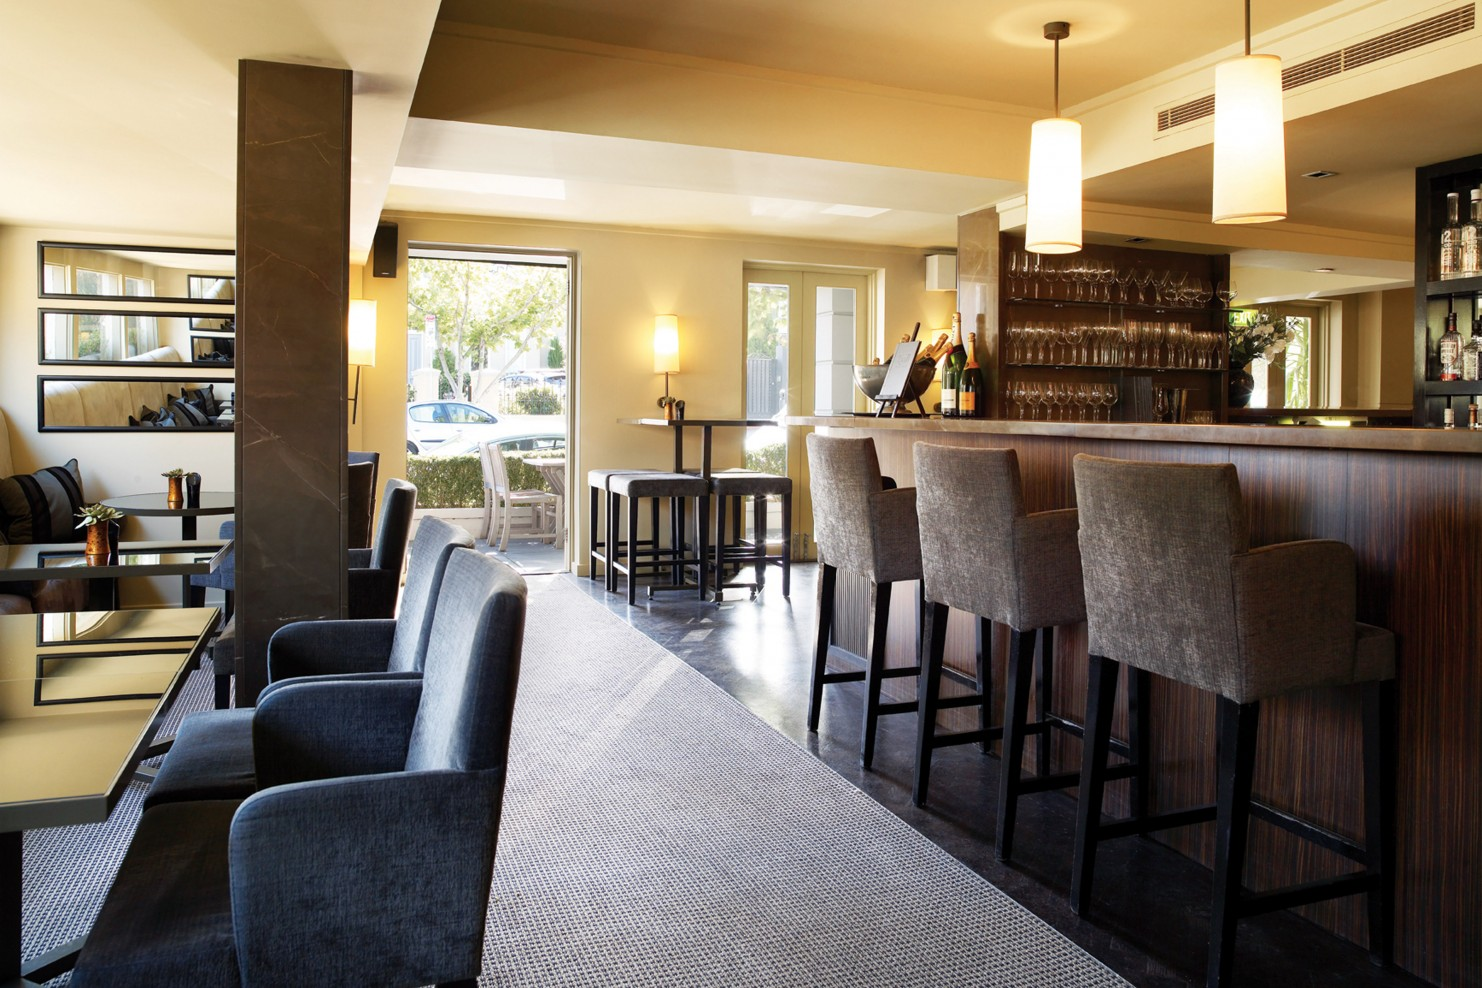 Brilliant Lyall Hotel And Spa South Yarra Melbourne Victoria Beatyapartments Chair Design Images Beatyapartmentscom